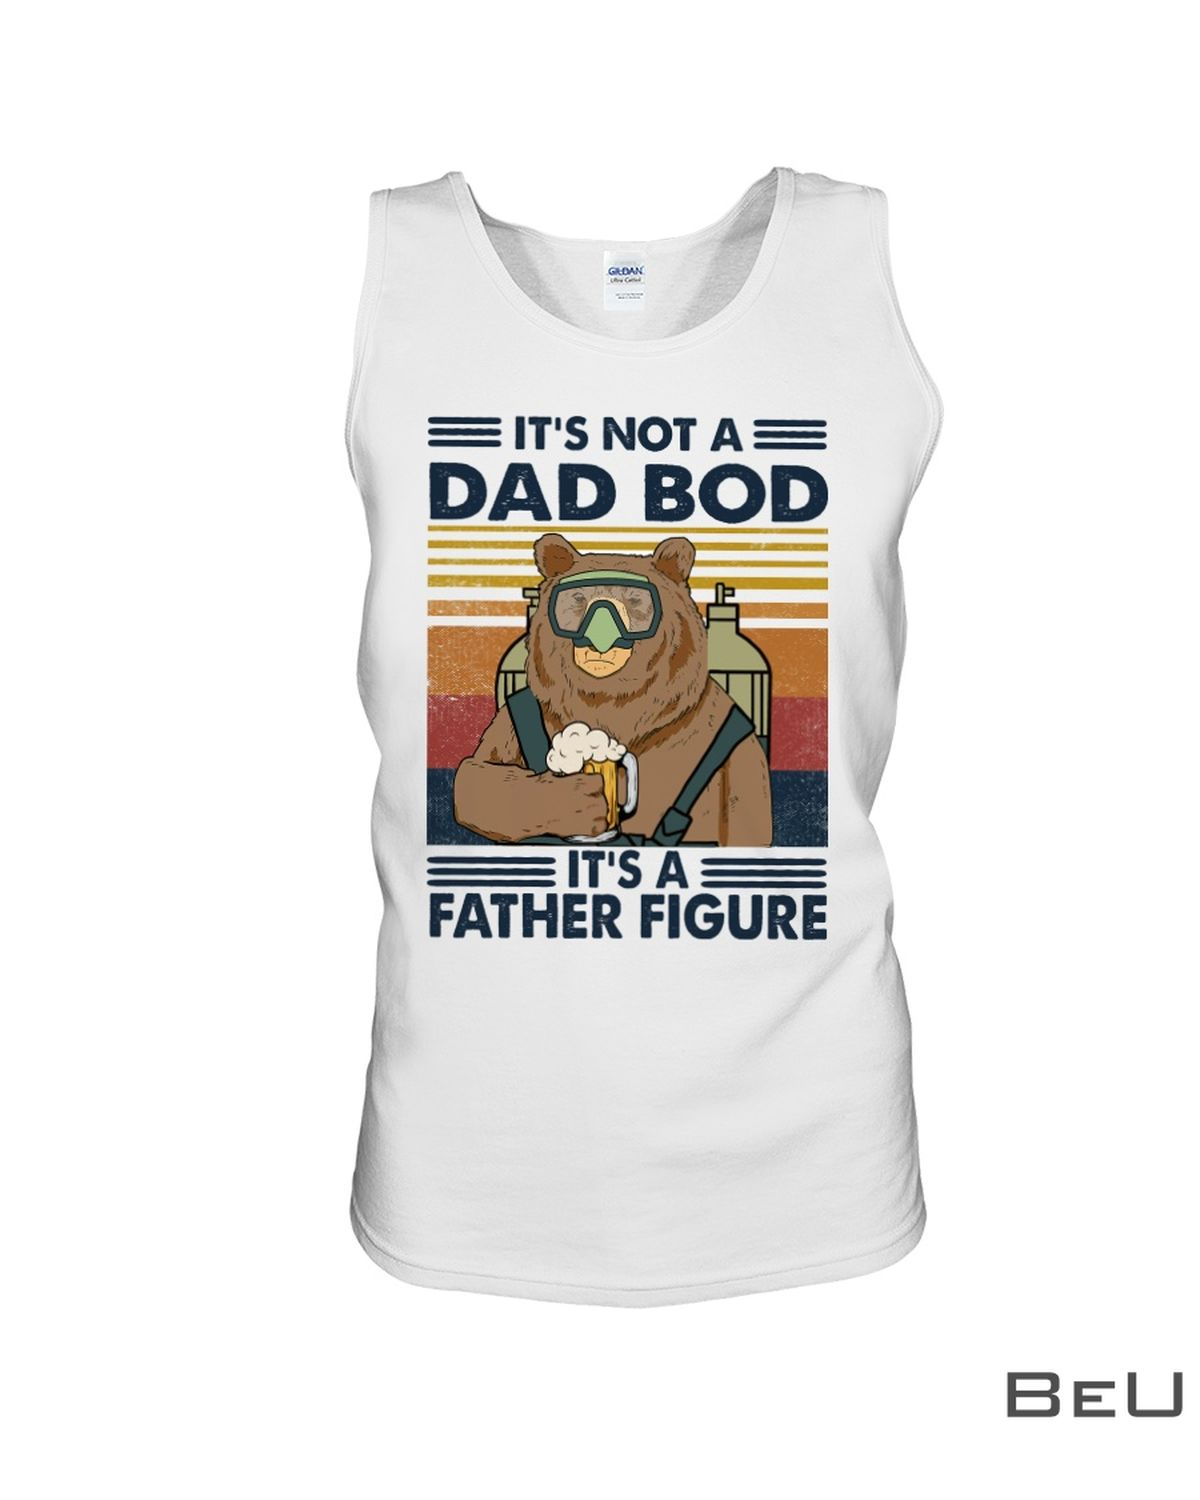 Scuba Diving Beer It's Not A Dad Bod It's A Father Figure Shirtx